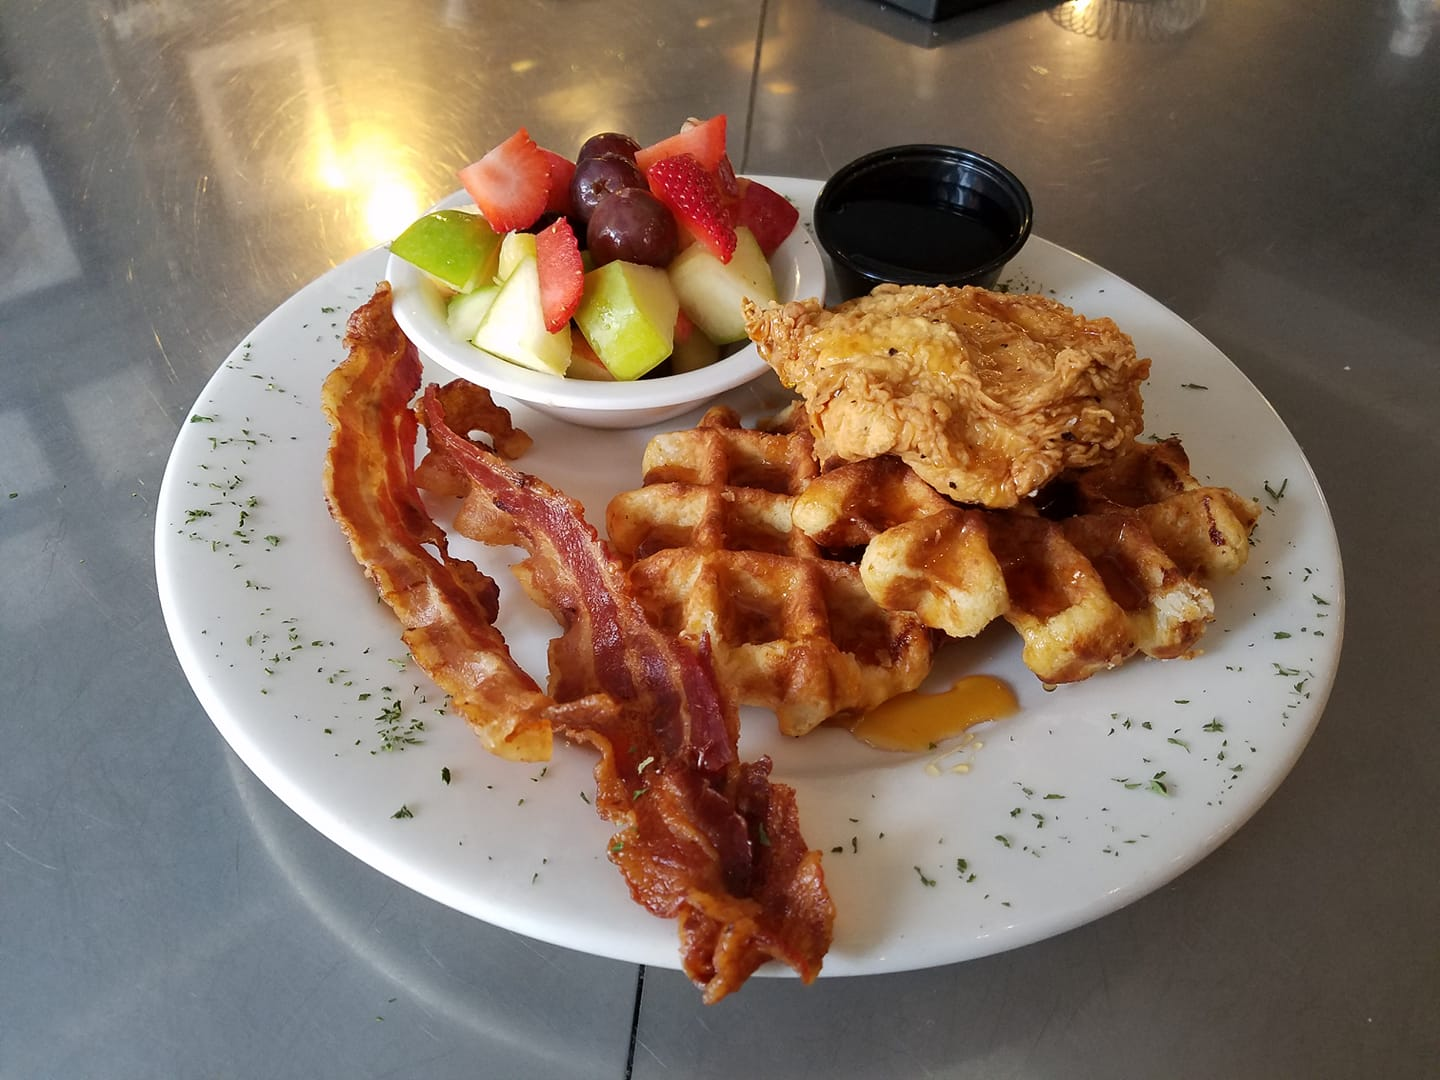 chicken and waffles with bacon strips and a side salad with a cup of syrup